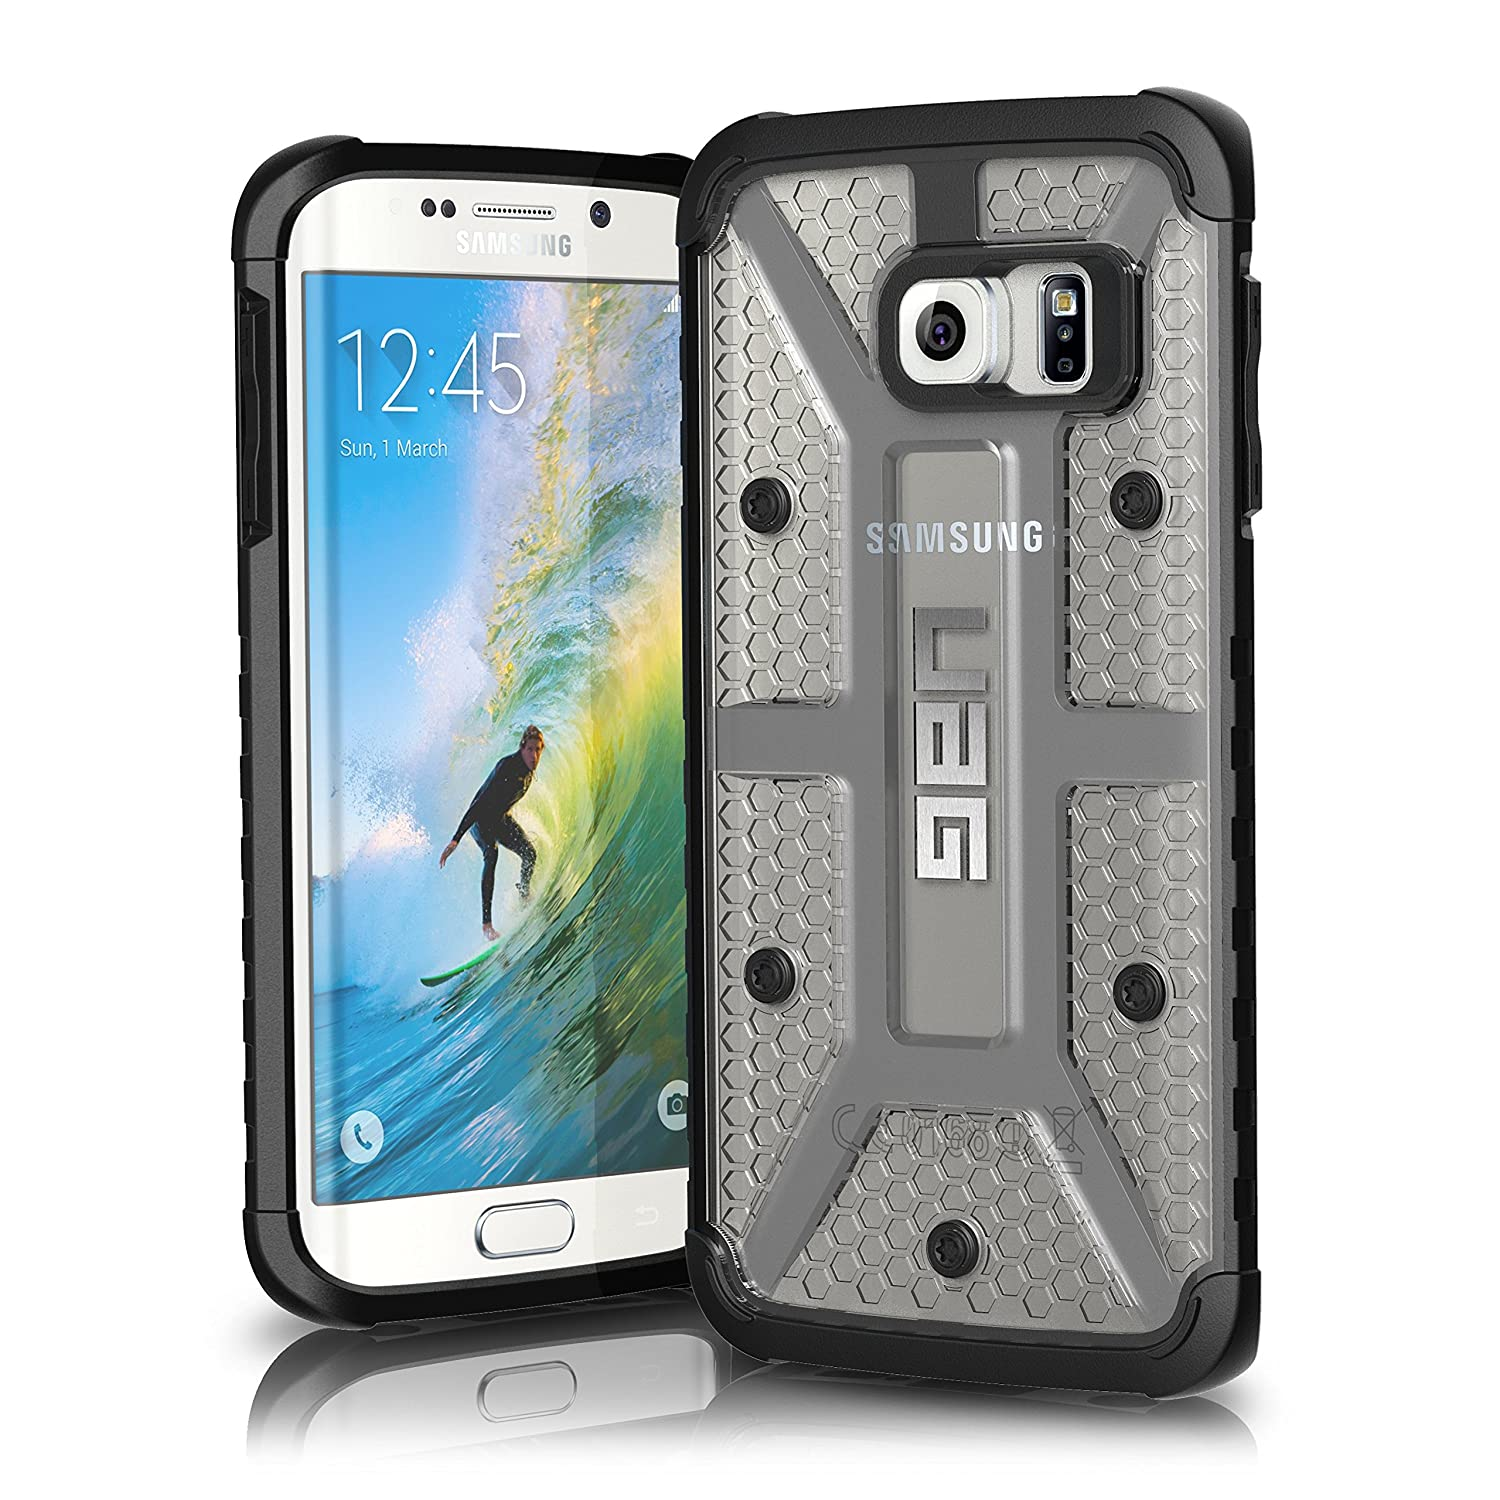 Galaxy s6 cases shop samsung cases online uag urban armor gear - Amazon Com Uag Samsung Galaxy S6 Edge 5 1 Inch Screen Feather Light Composite Ice Military Drop Tested Phone Case Cell Phones Accessories